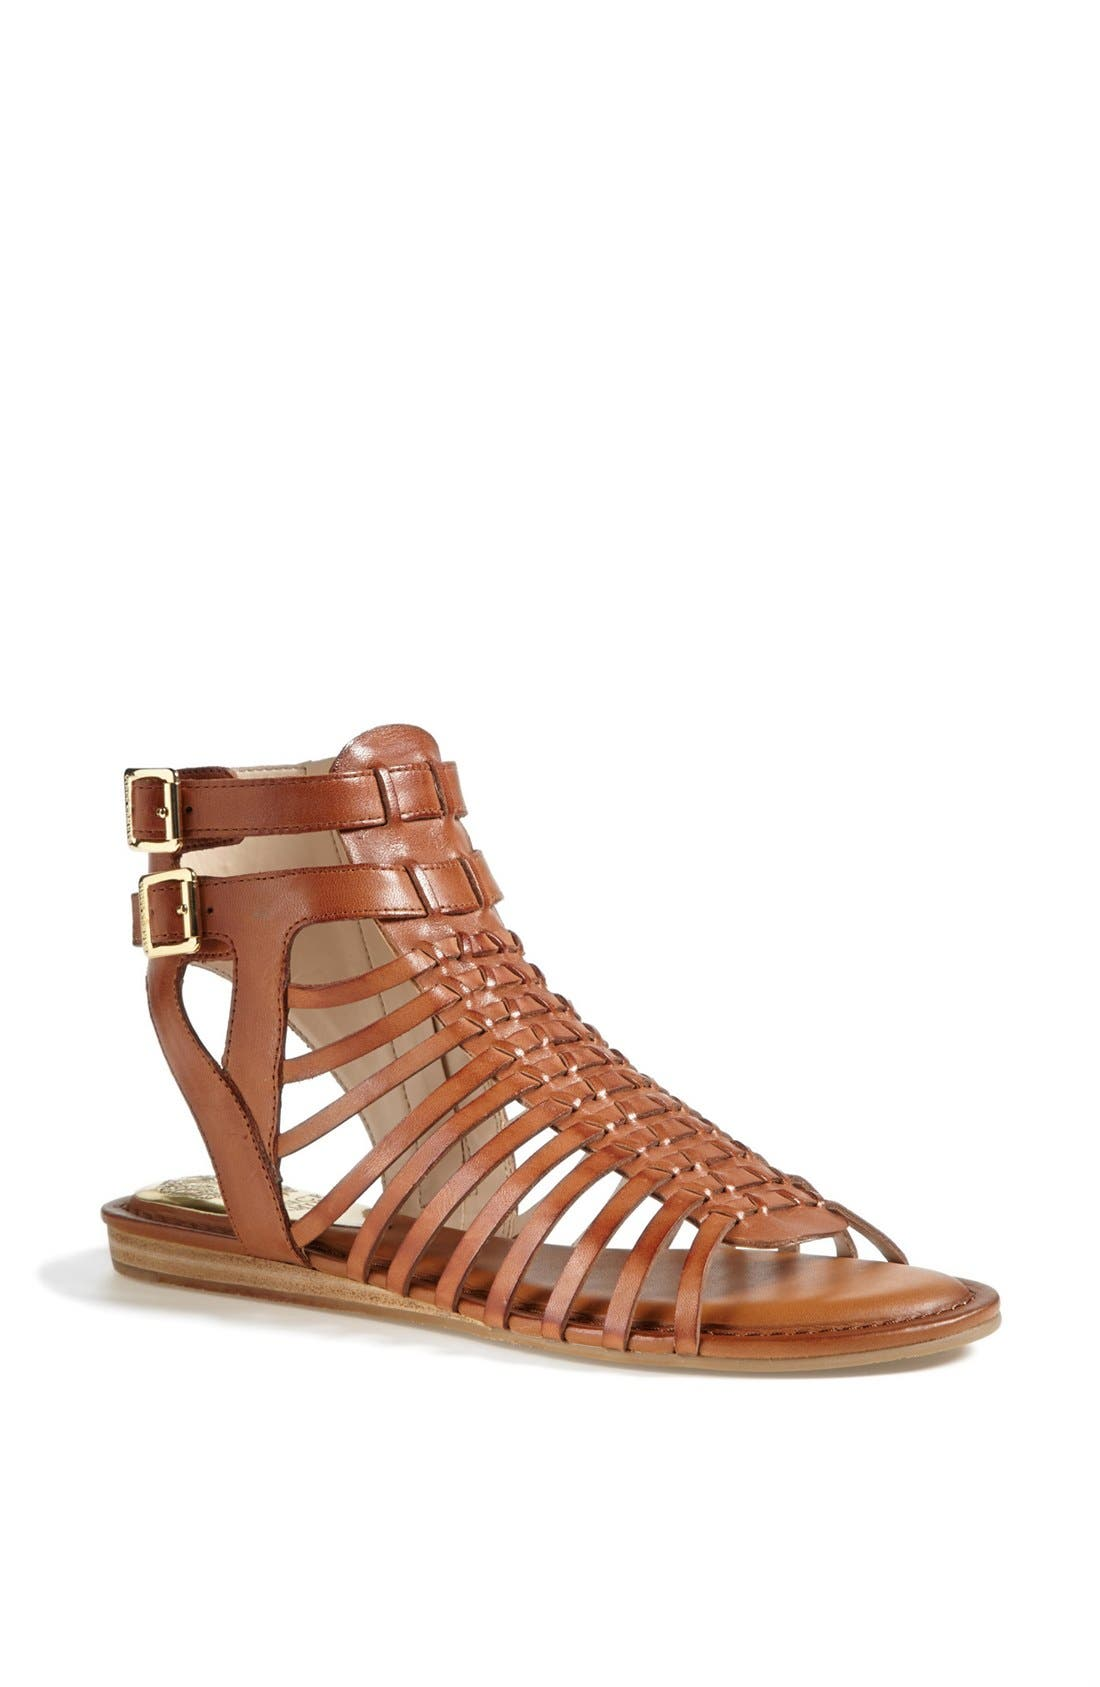 Alternate Image 1 Selected - Vince Camuto 'Kensil' Gladiator Sandal